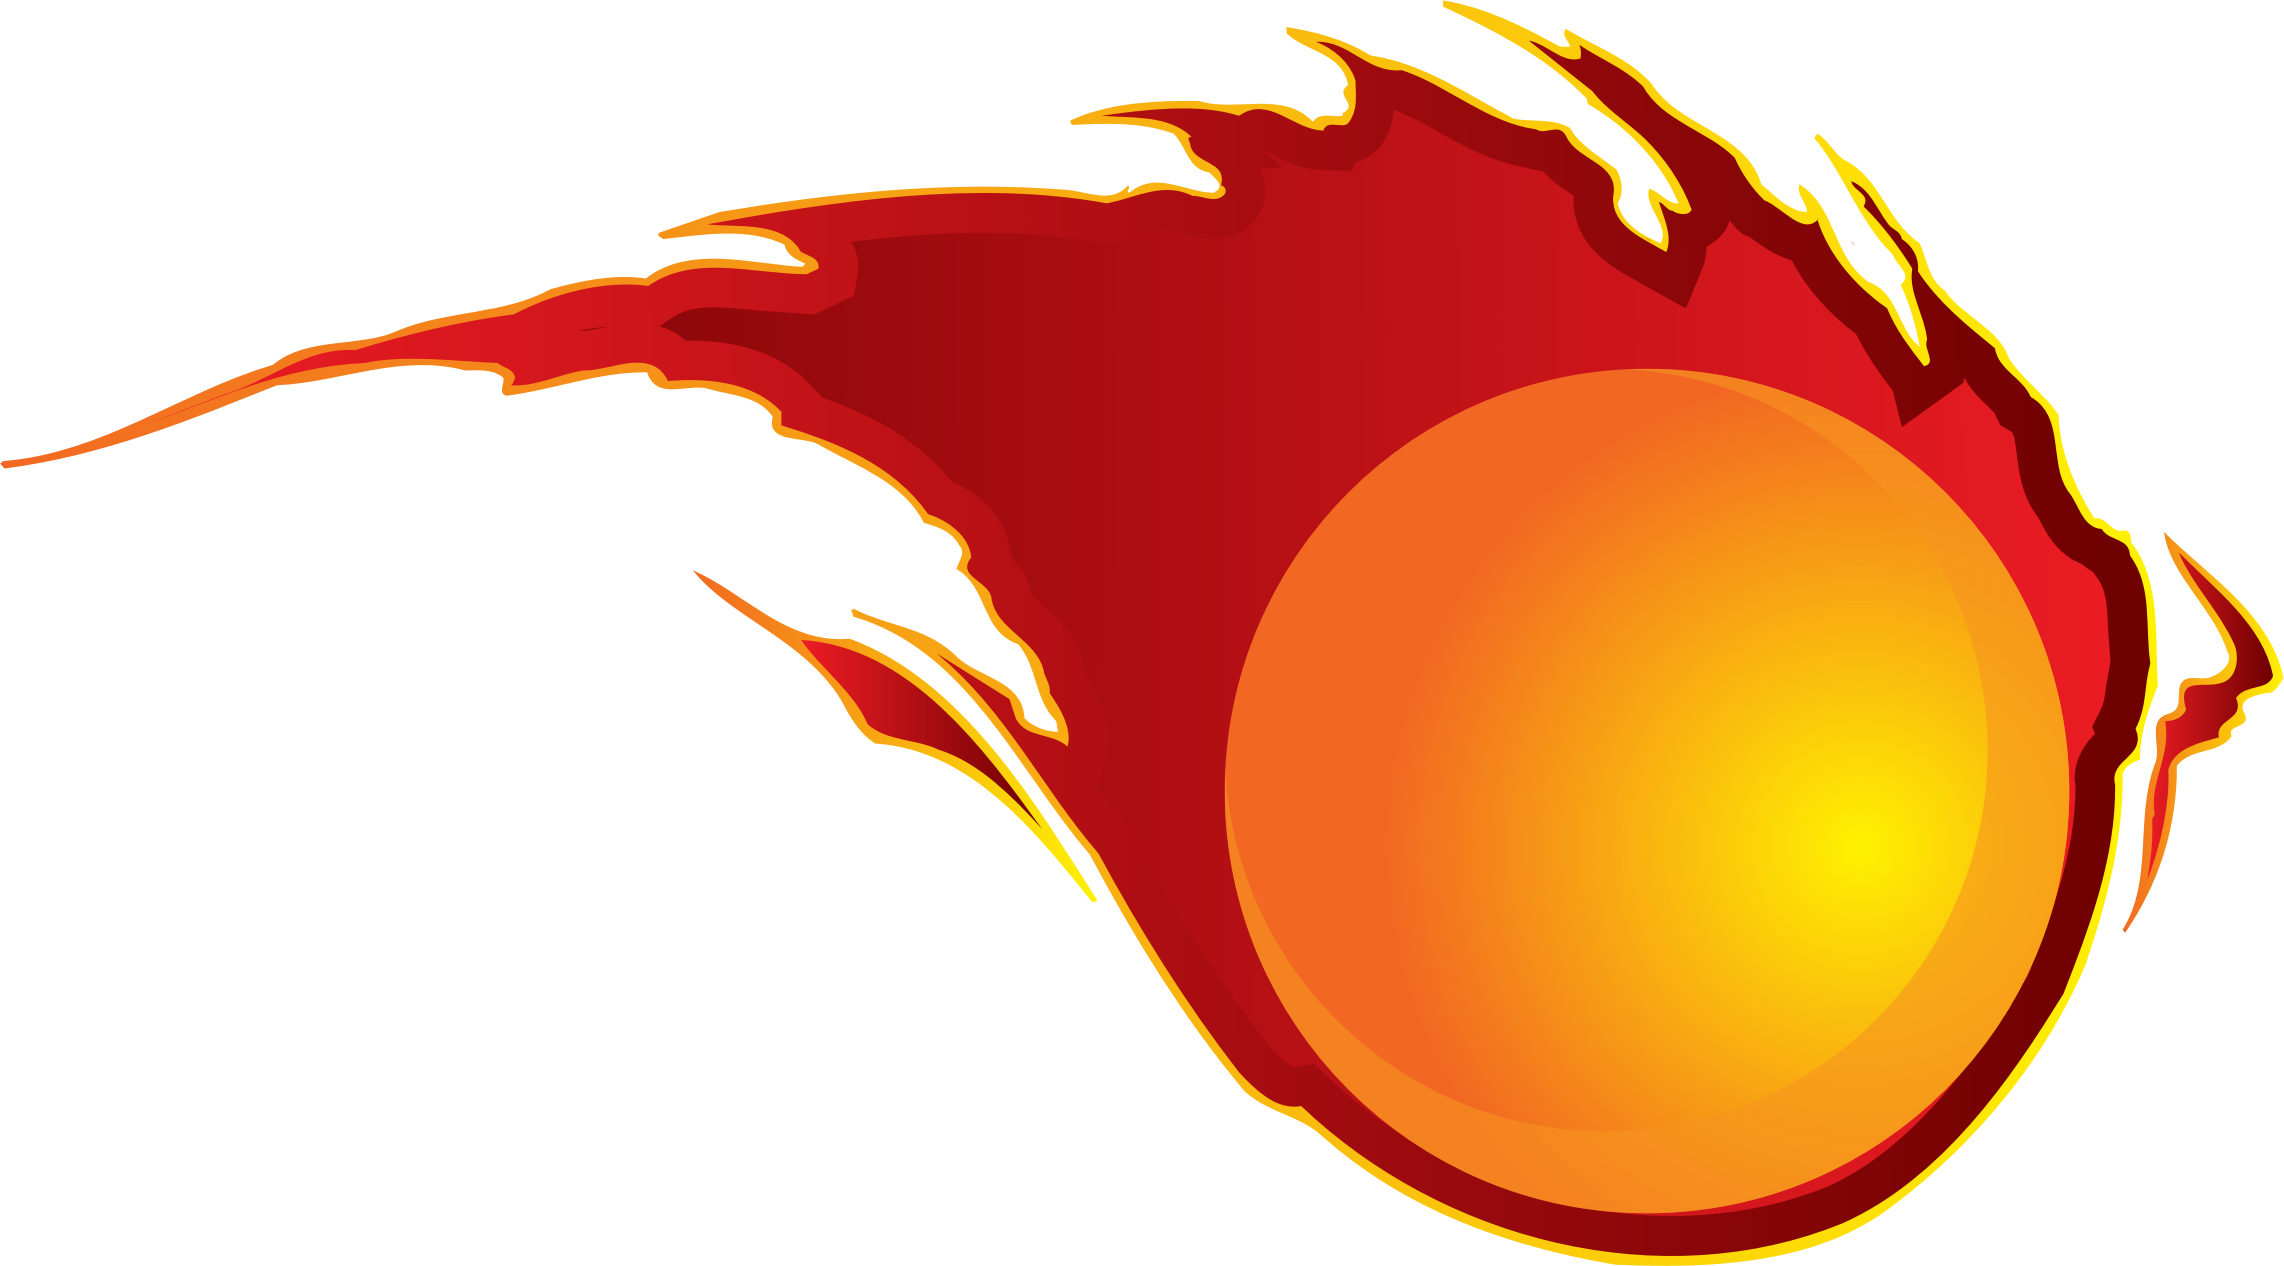 Download Fireball High quality Png #46734.